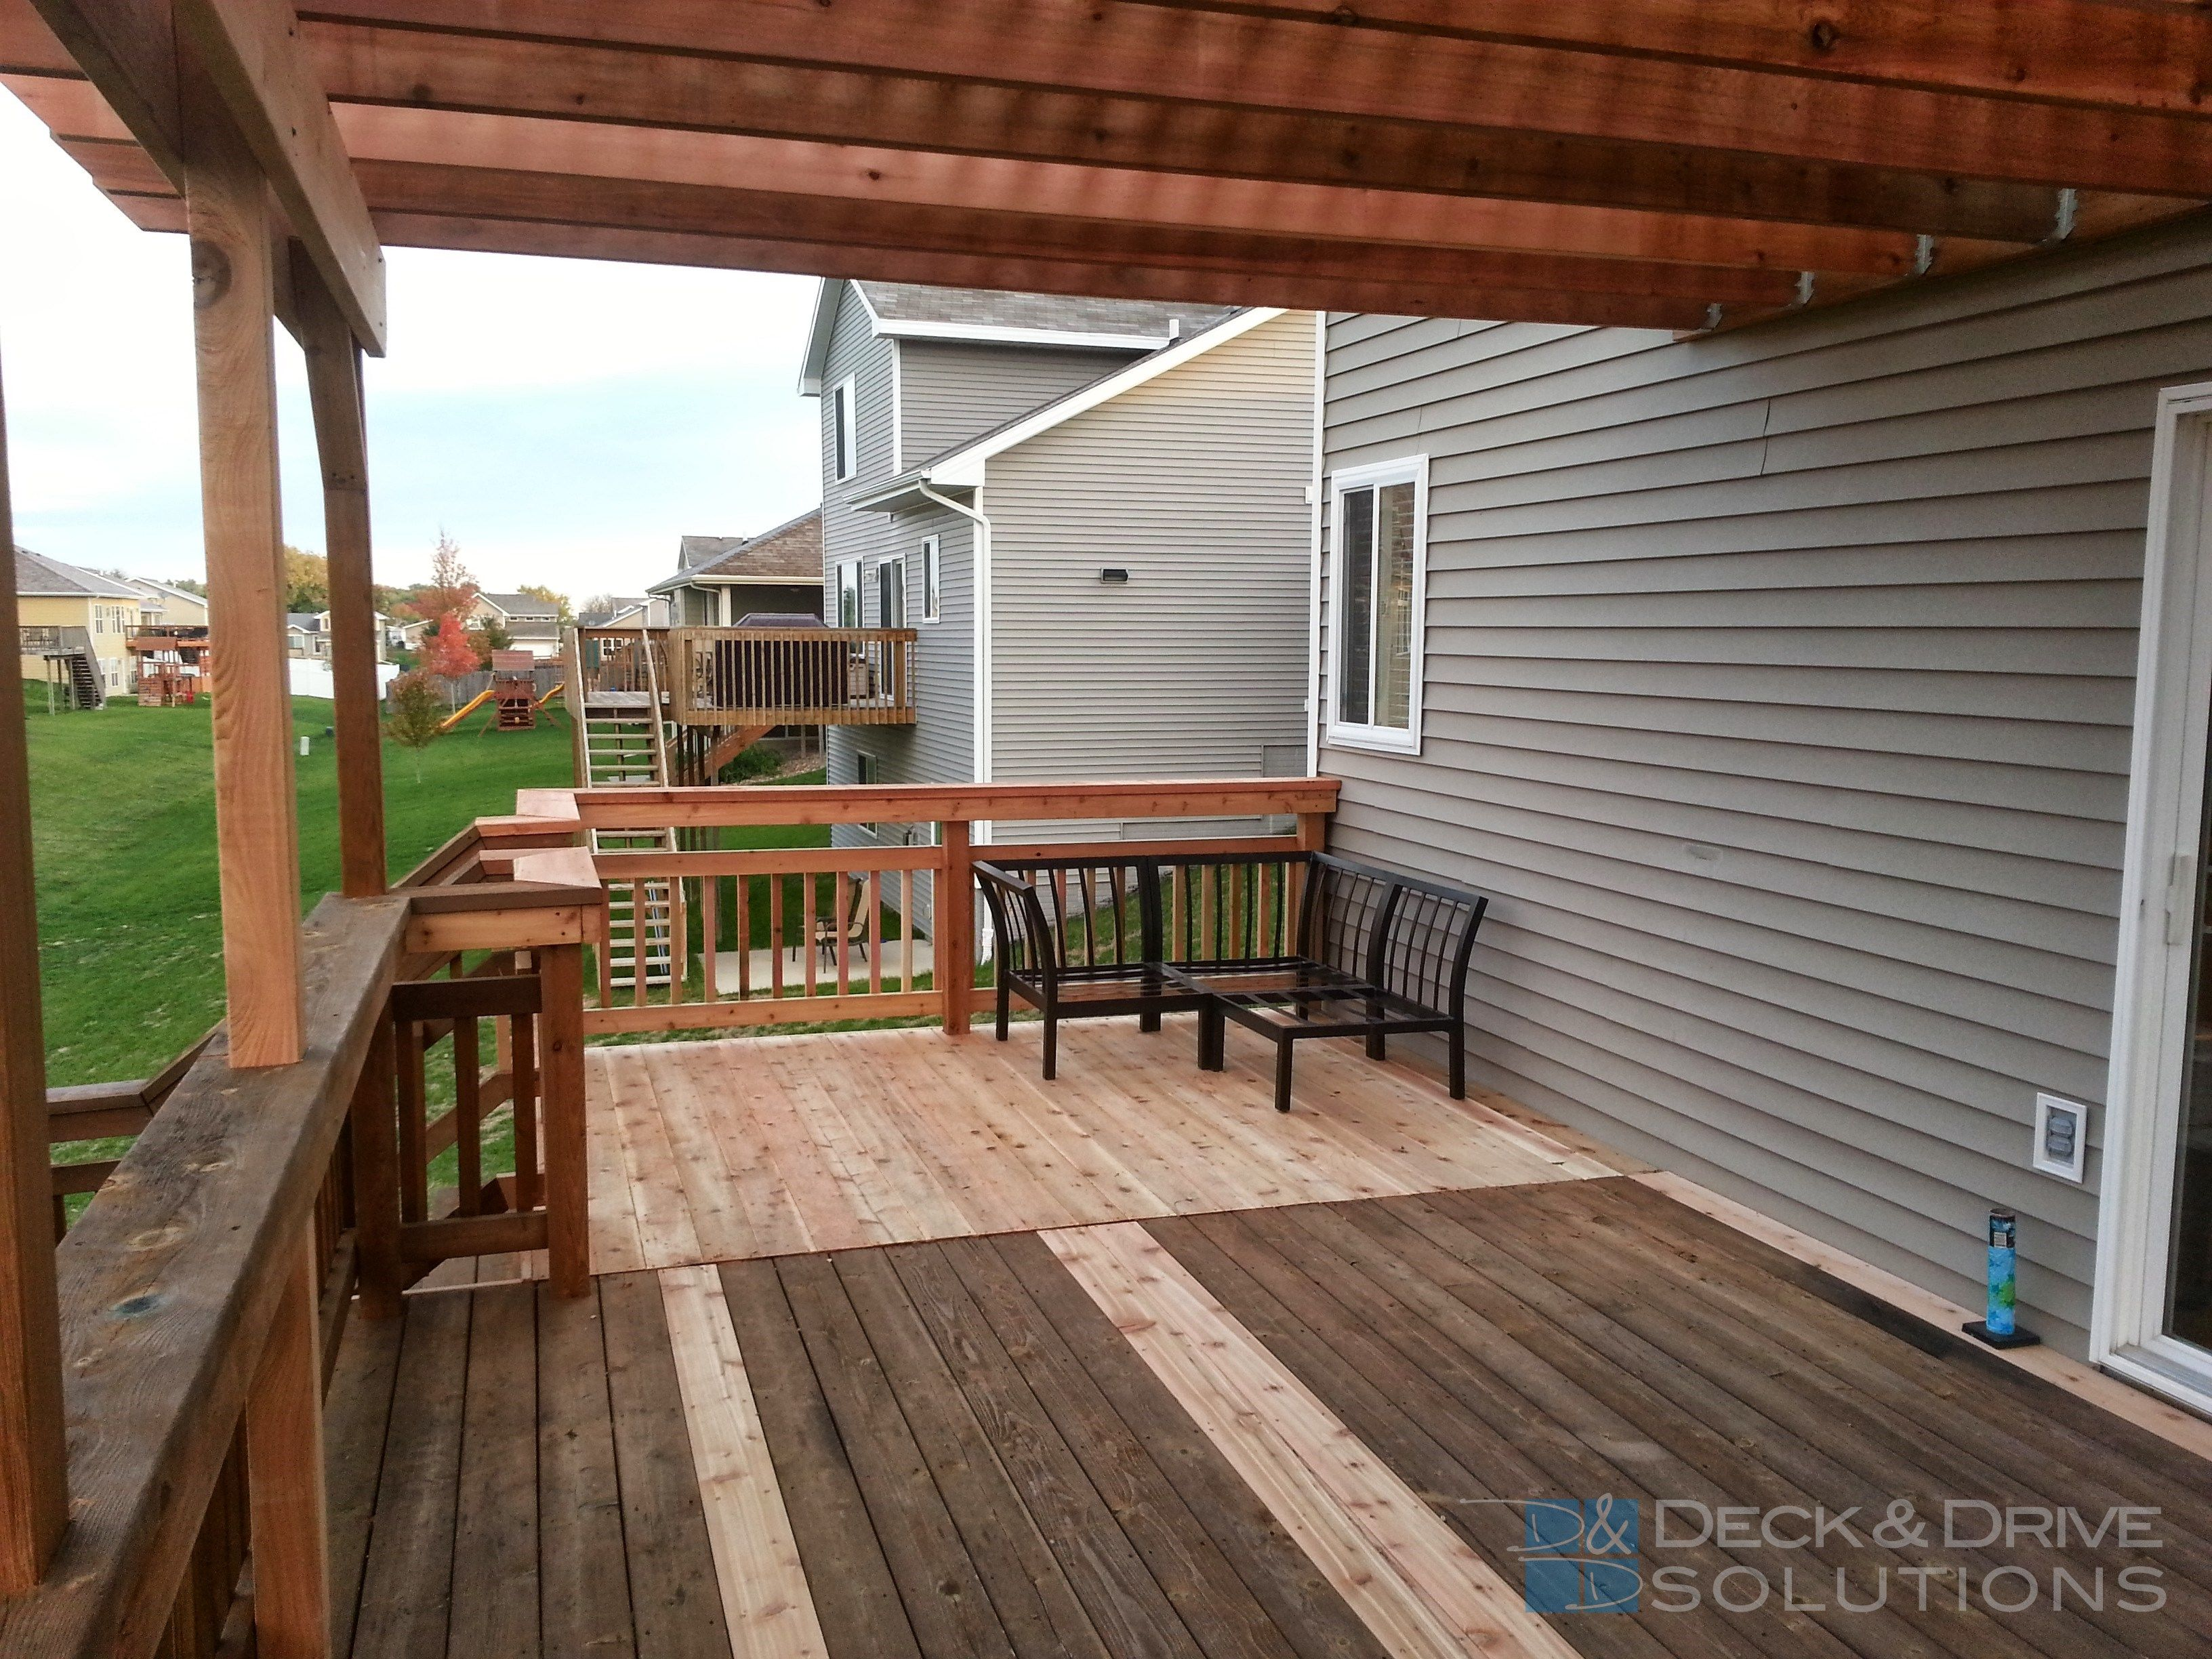 Good We Added To His Existing Deck, Then We Built A New Pergola Over His  Existing Deck. Next Year We Will Stain / Seal The Deck To Match The New And  Old Wood ...